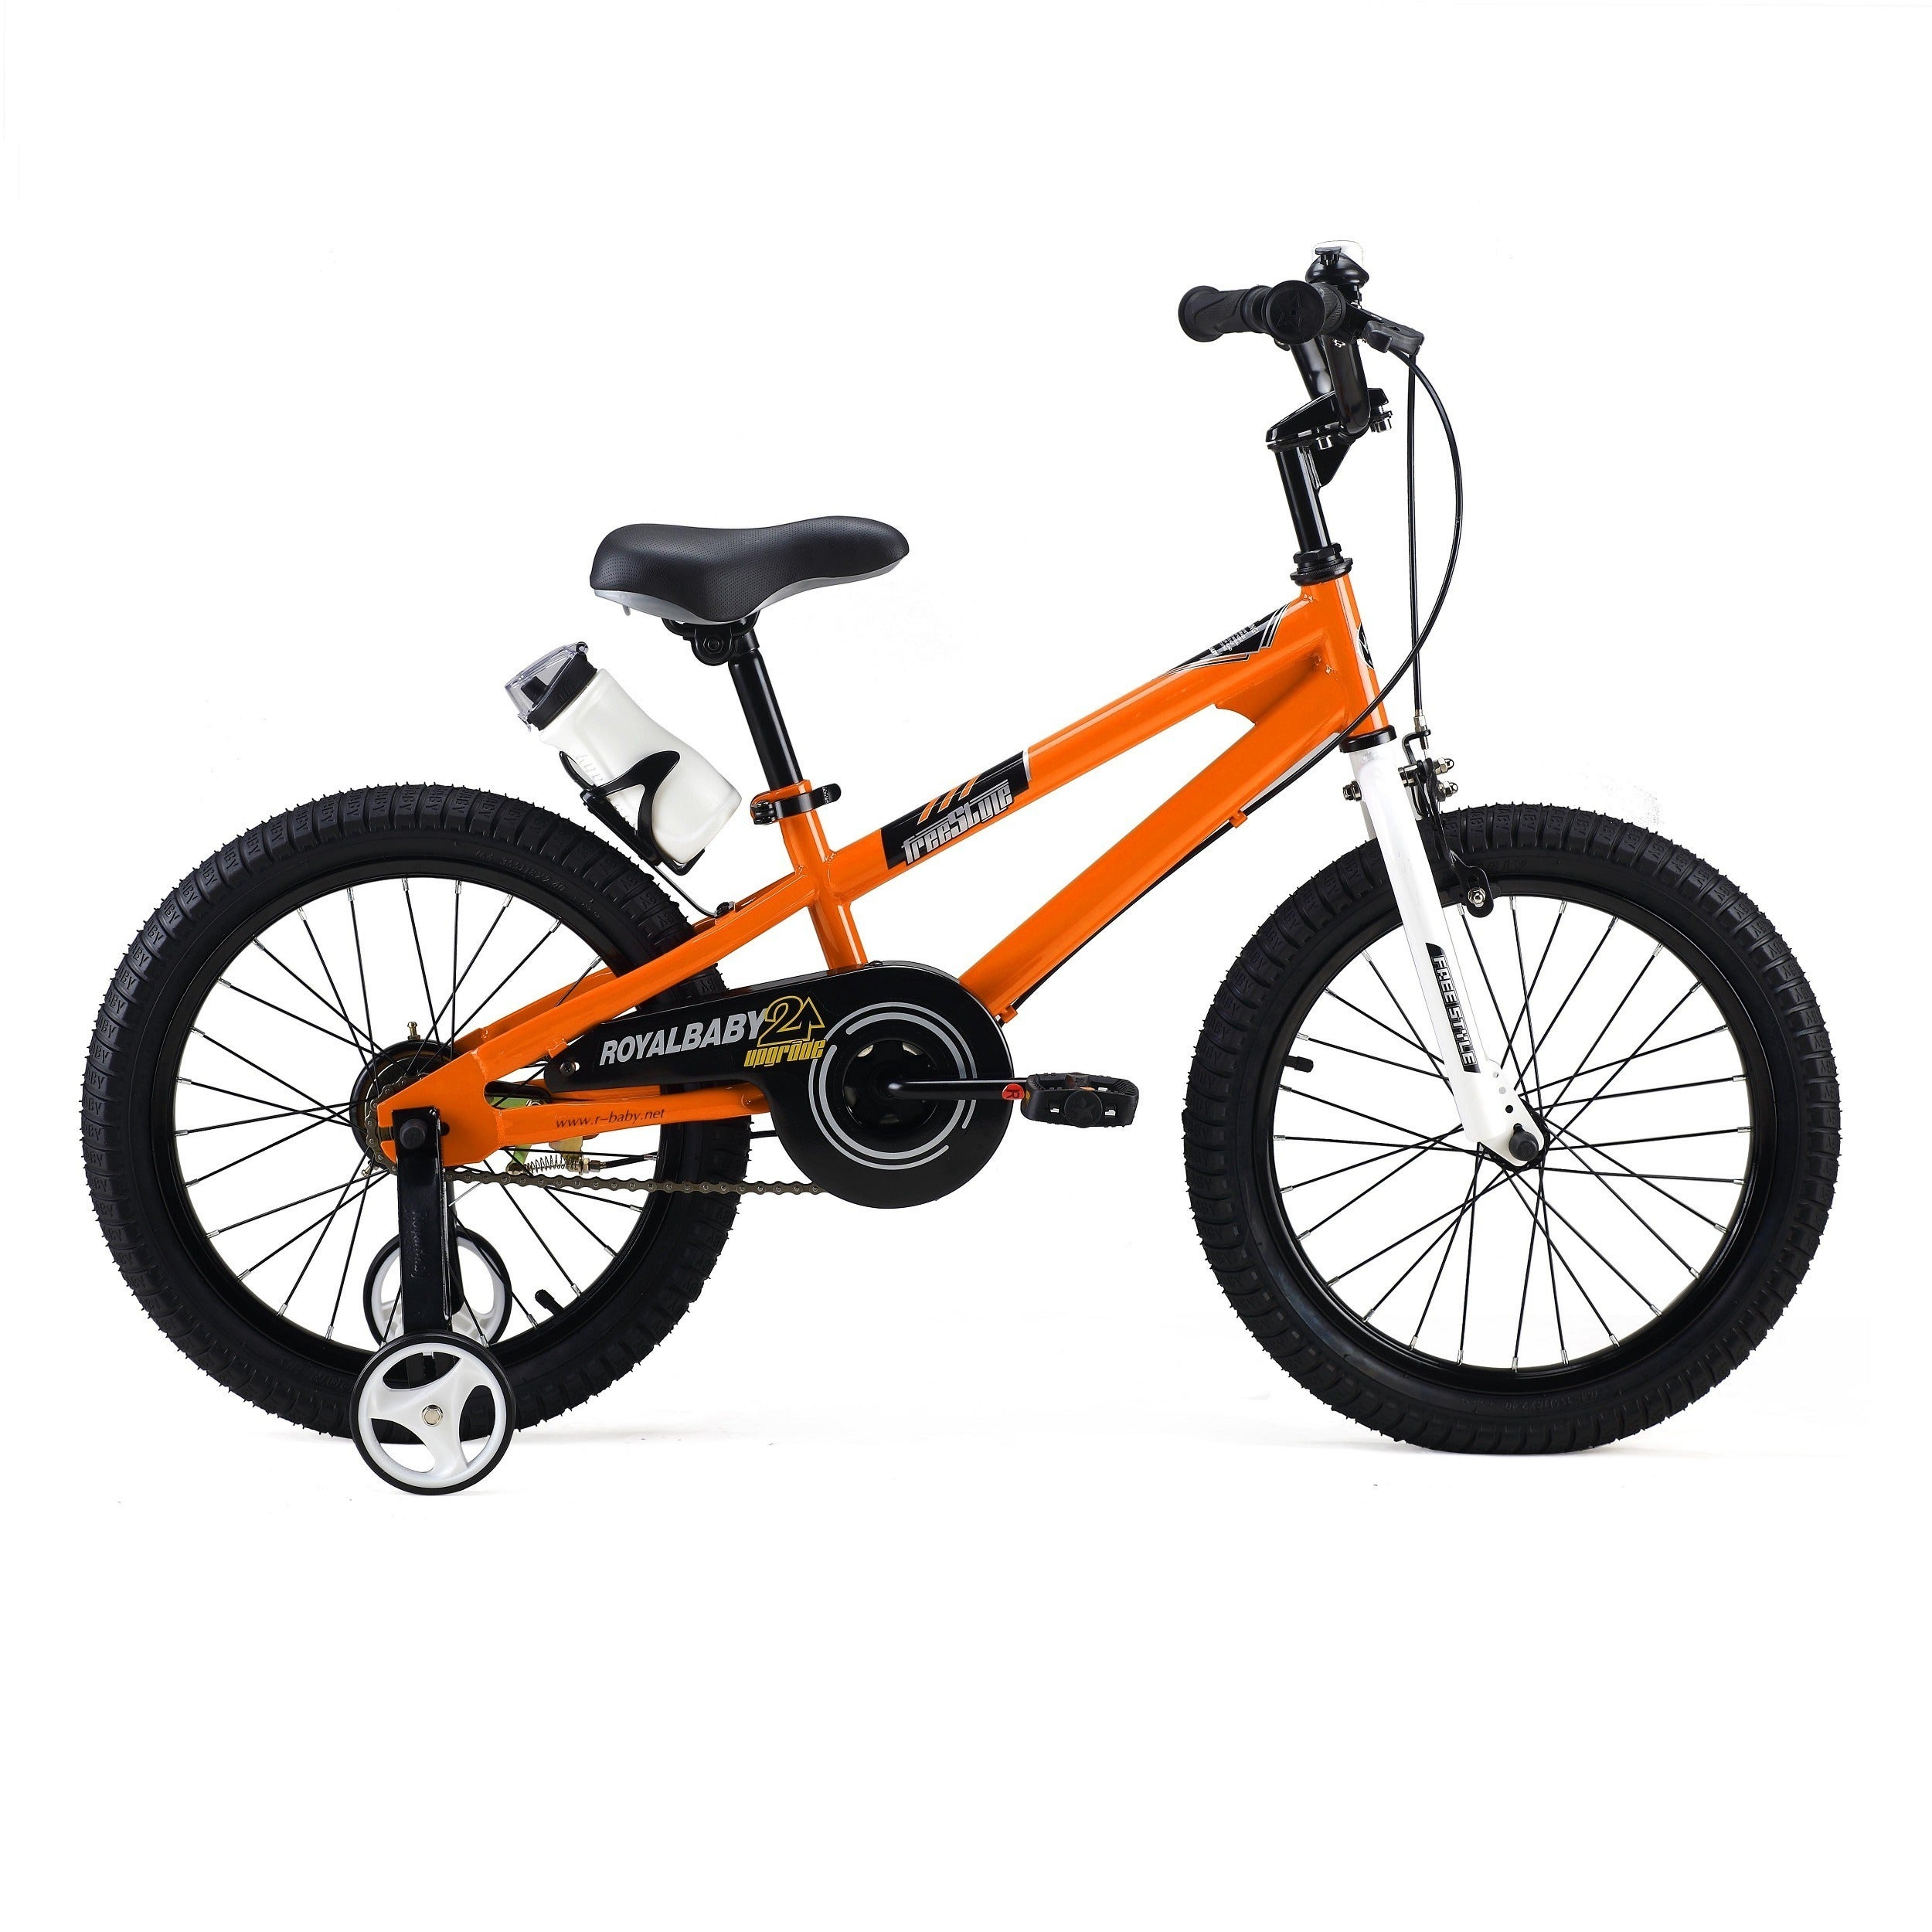 Shop RoyalBaby BMX Freestyle 18-inch Kids' Bike with Training Wheels ... royalbaby bmx freestyle kid's bike 18